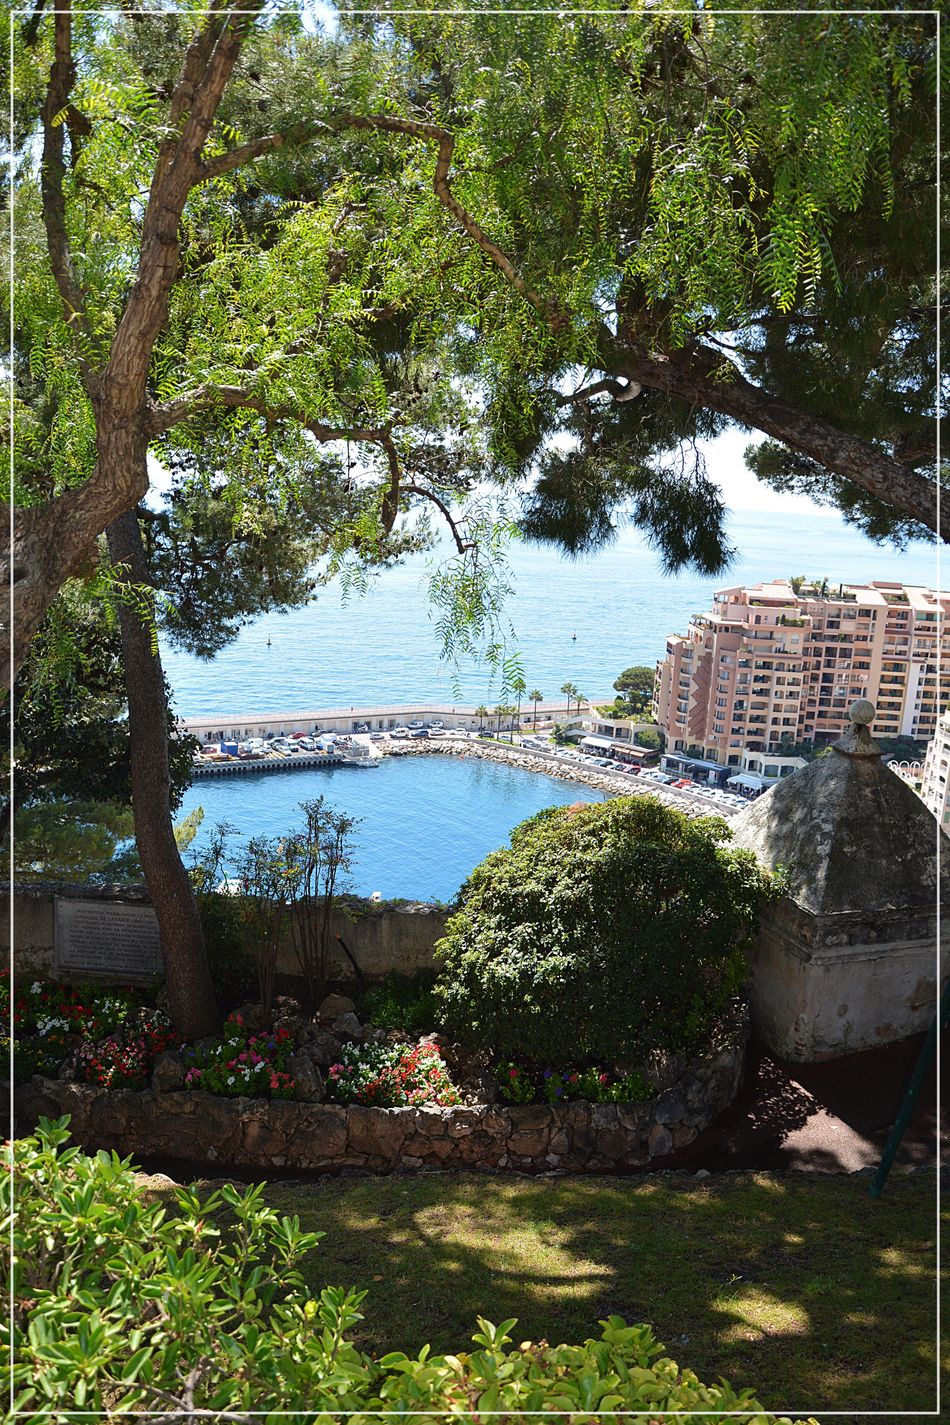 Provencealpescôtedazur Côte D'Azur Monaco Tree Water Building Exterior Architecture Built Structure Outdoors No People Day Nature Growth Travel Destinations Sea Scenics Plant Sky Branch Beauty In Nature Nautical Vessel Cityscape City